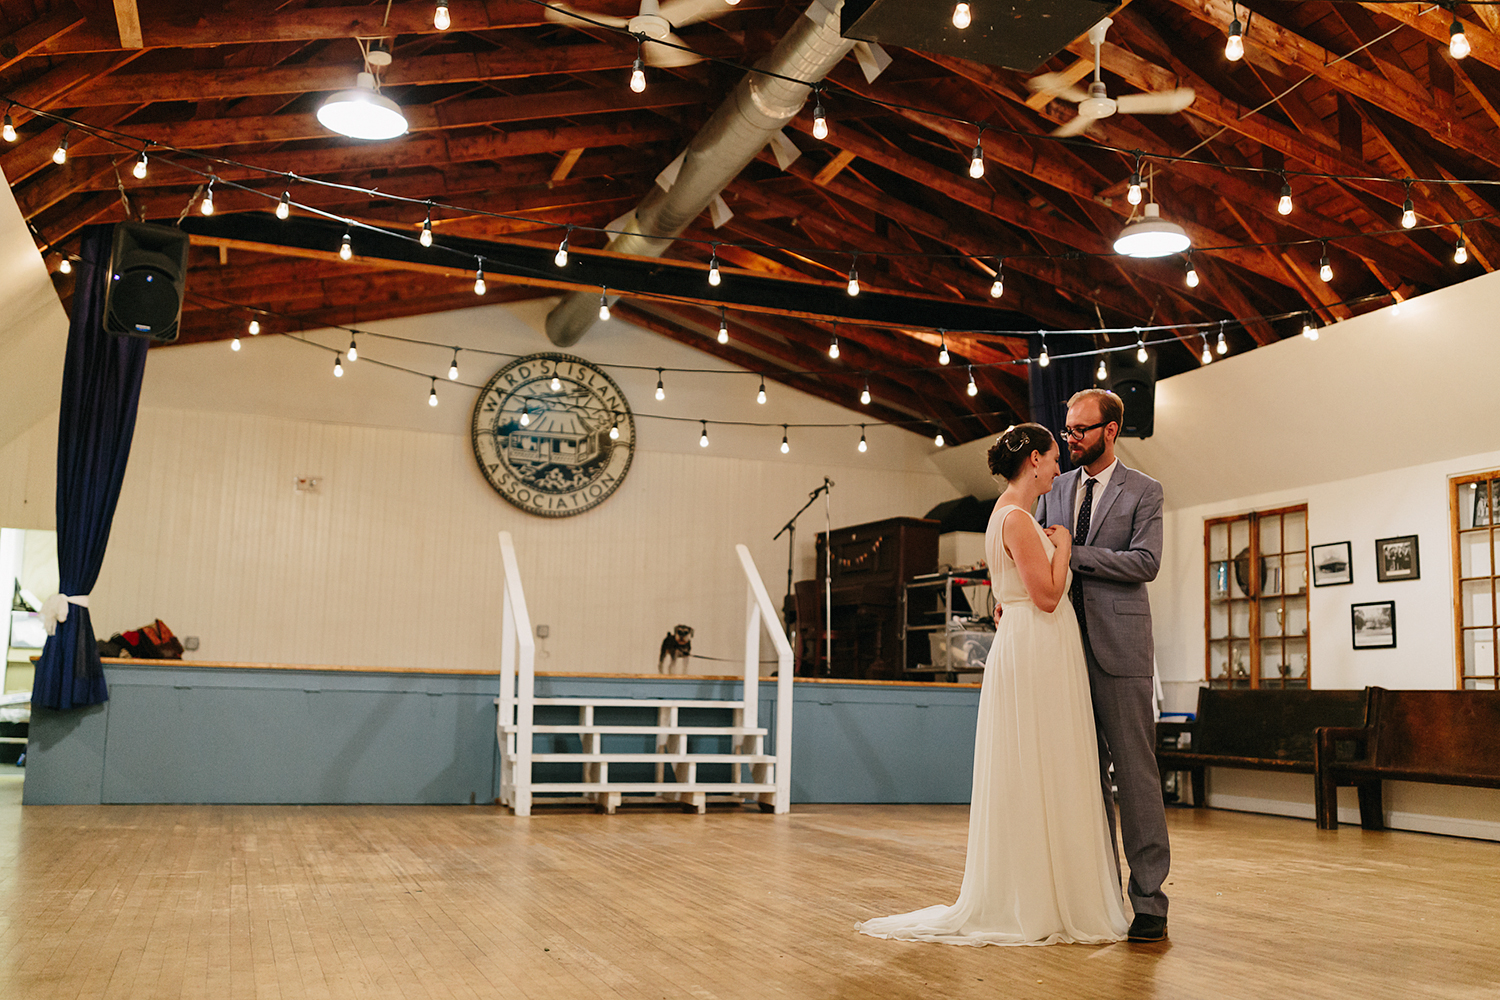 Best-Film-Wedding-Photographers-3b-photography-analog-photography-wards-island-clubhouse-junebug-weddings-vintage-venue-reception-guests-speeches-candid-moments-memories-dancing-benches-bride-and-groom-intimate-romantic-dancing-in-the-gym.jpg